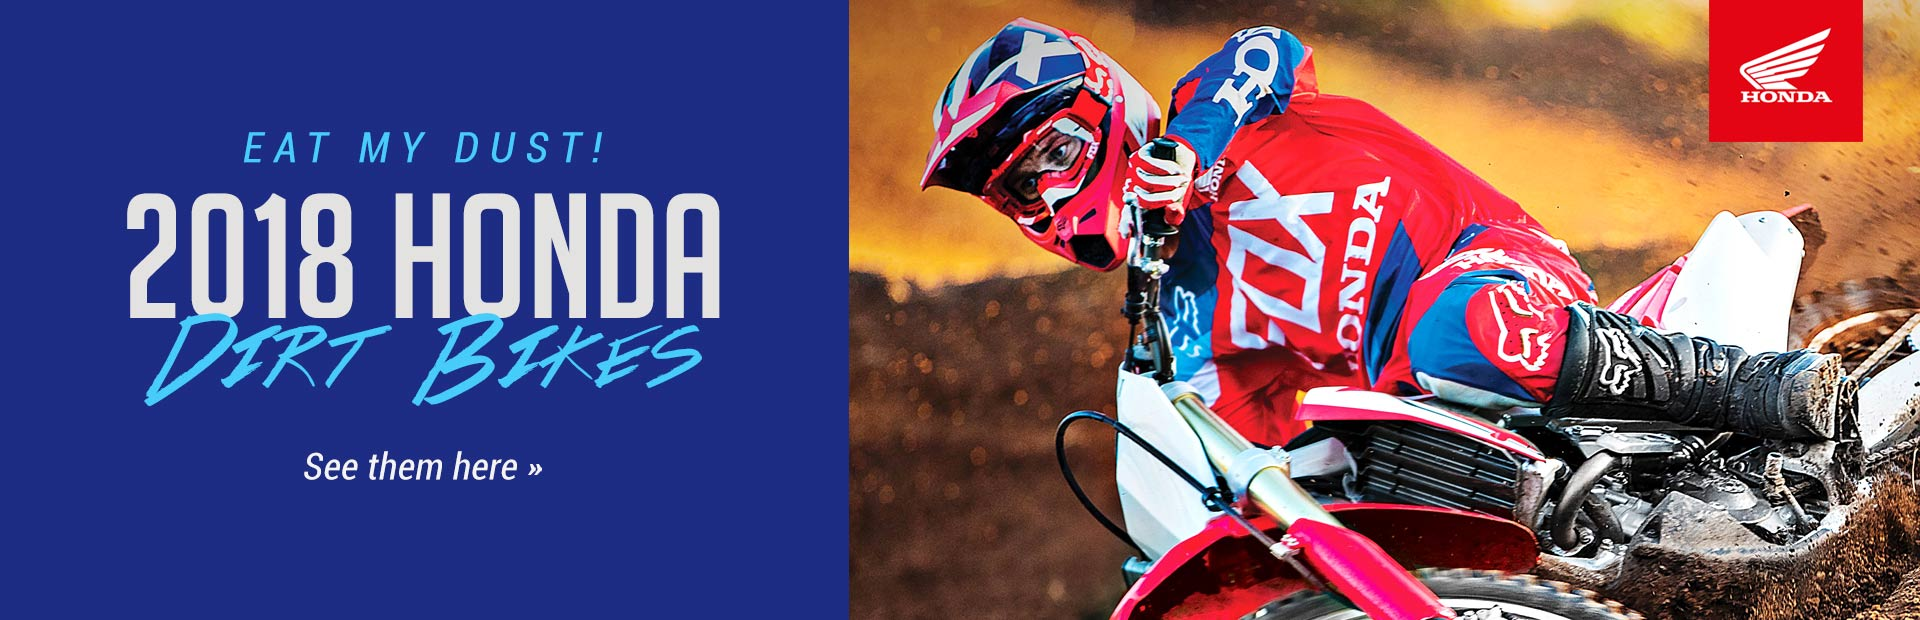 2018 Honda Dirt Bikes: Click here to view the models.